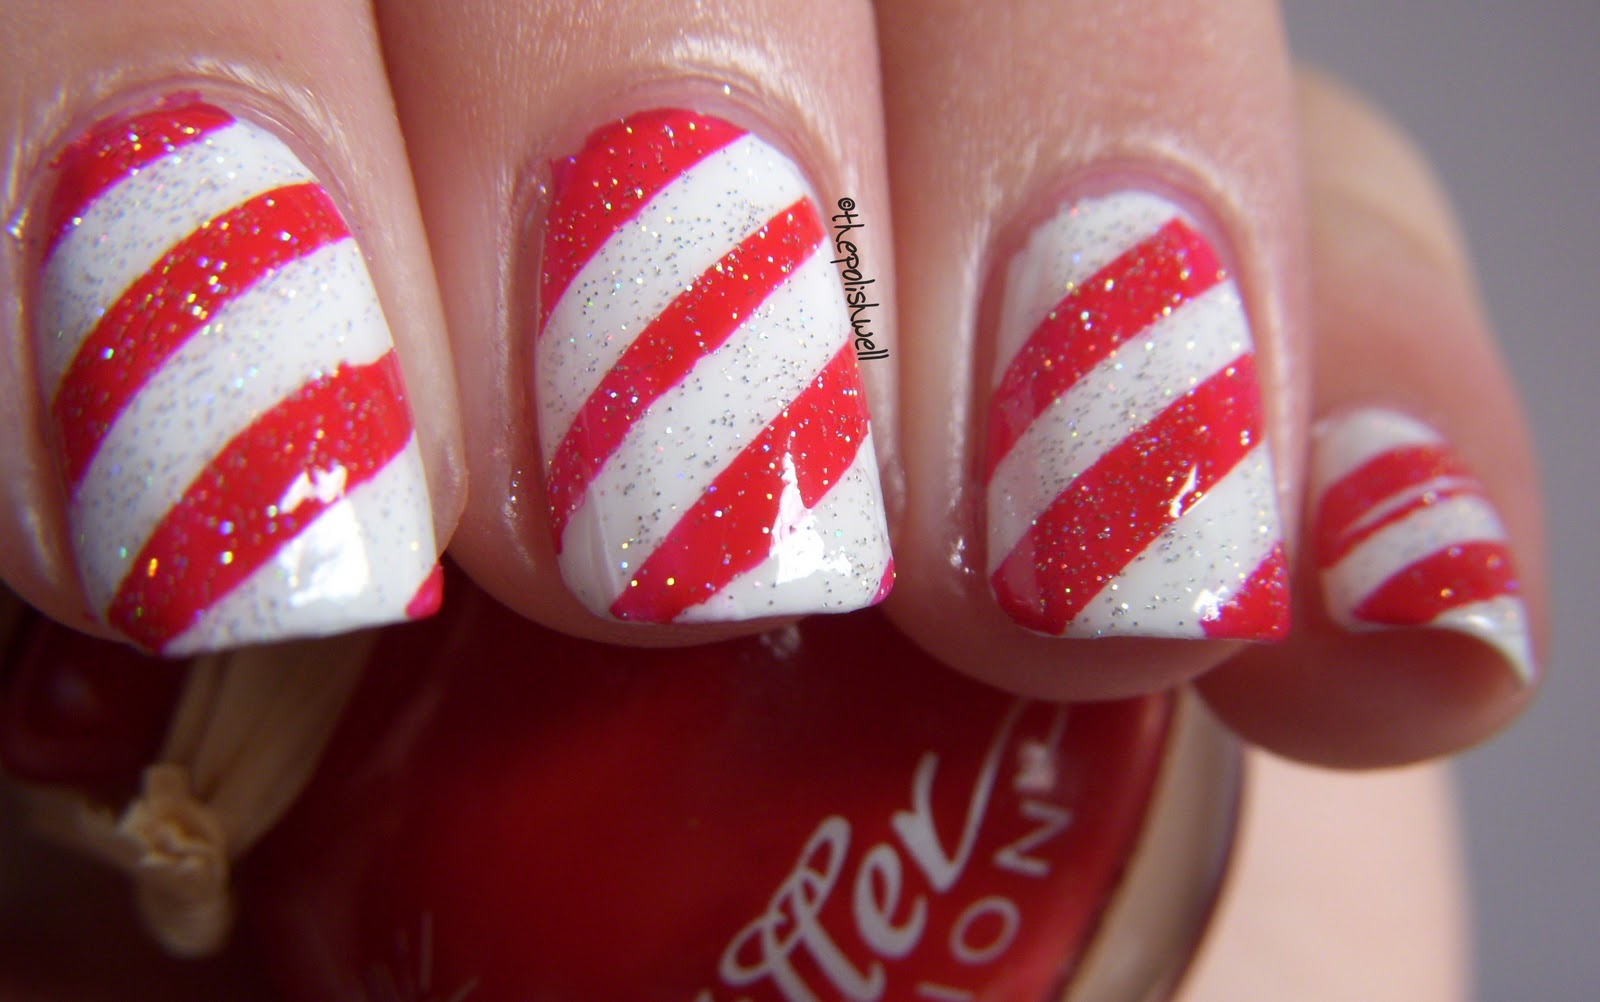 the polish well 12 days of christmas day 8 candy cane